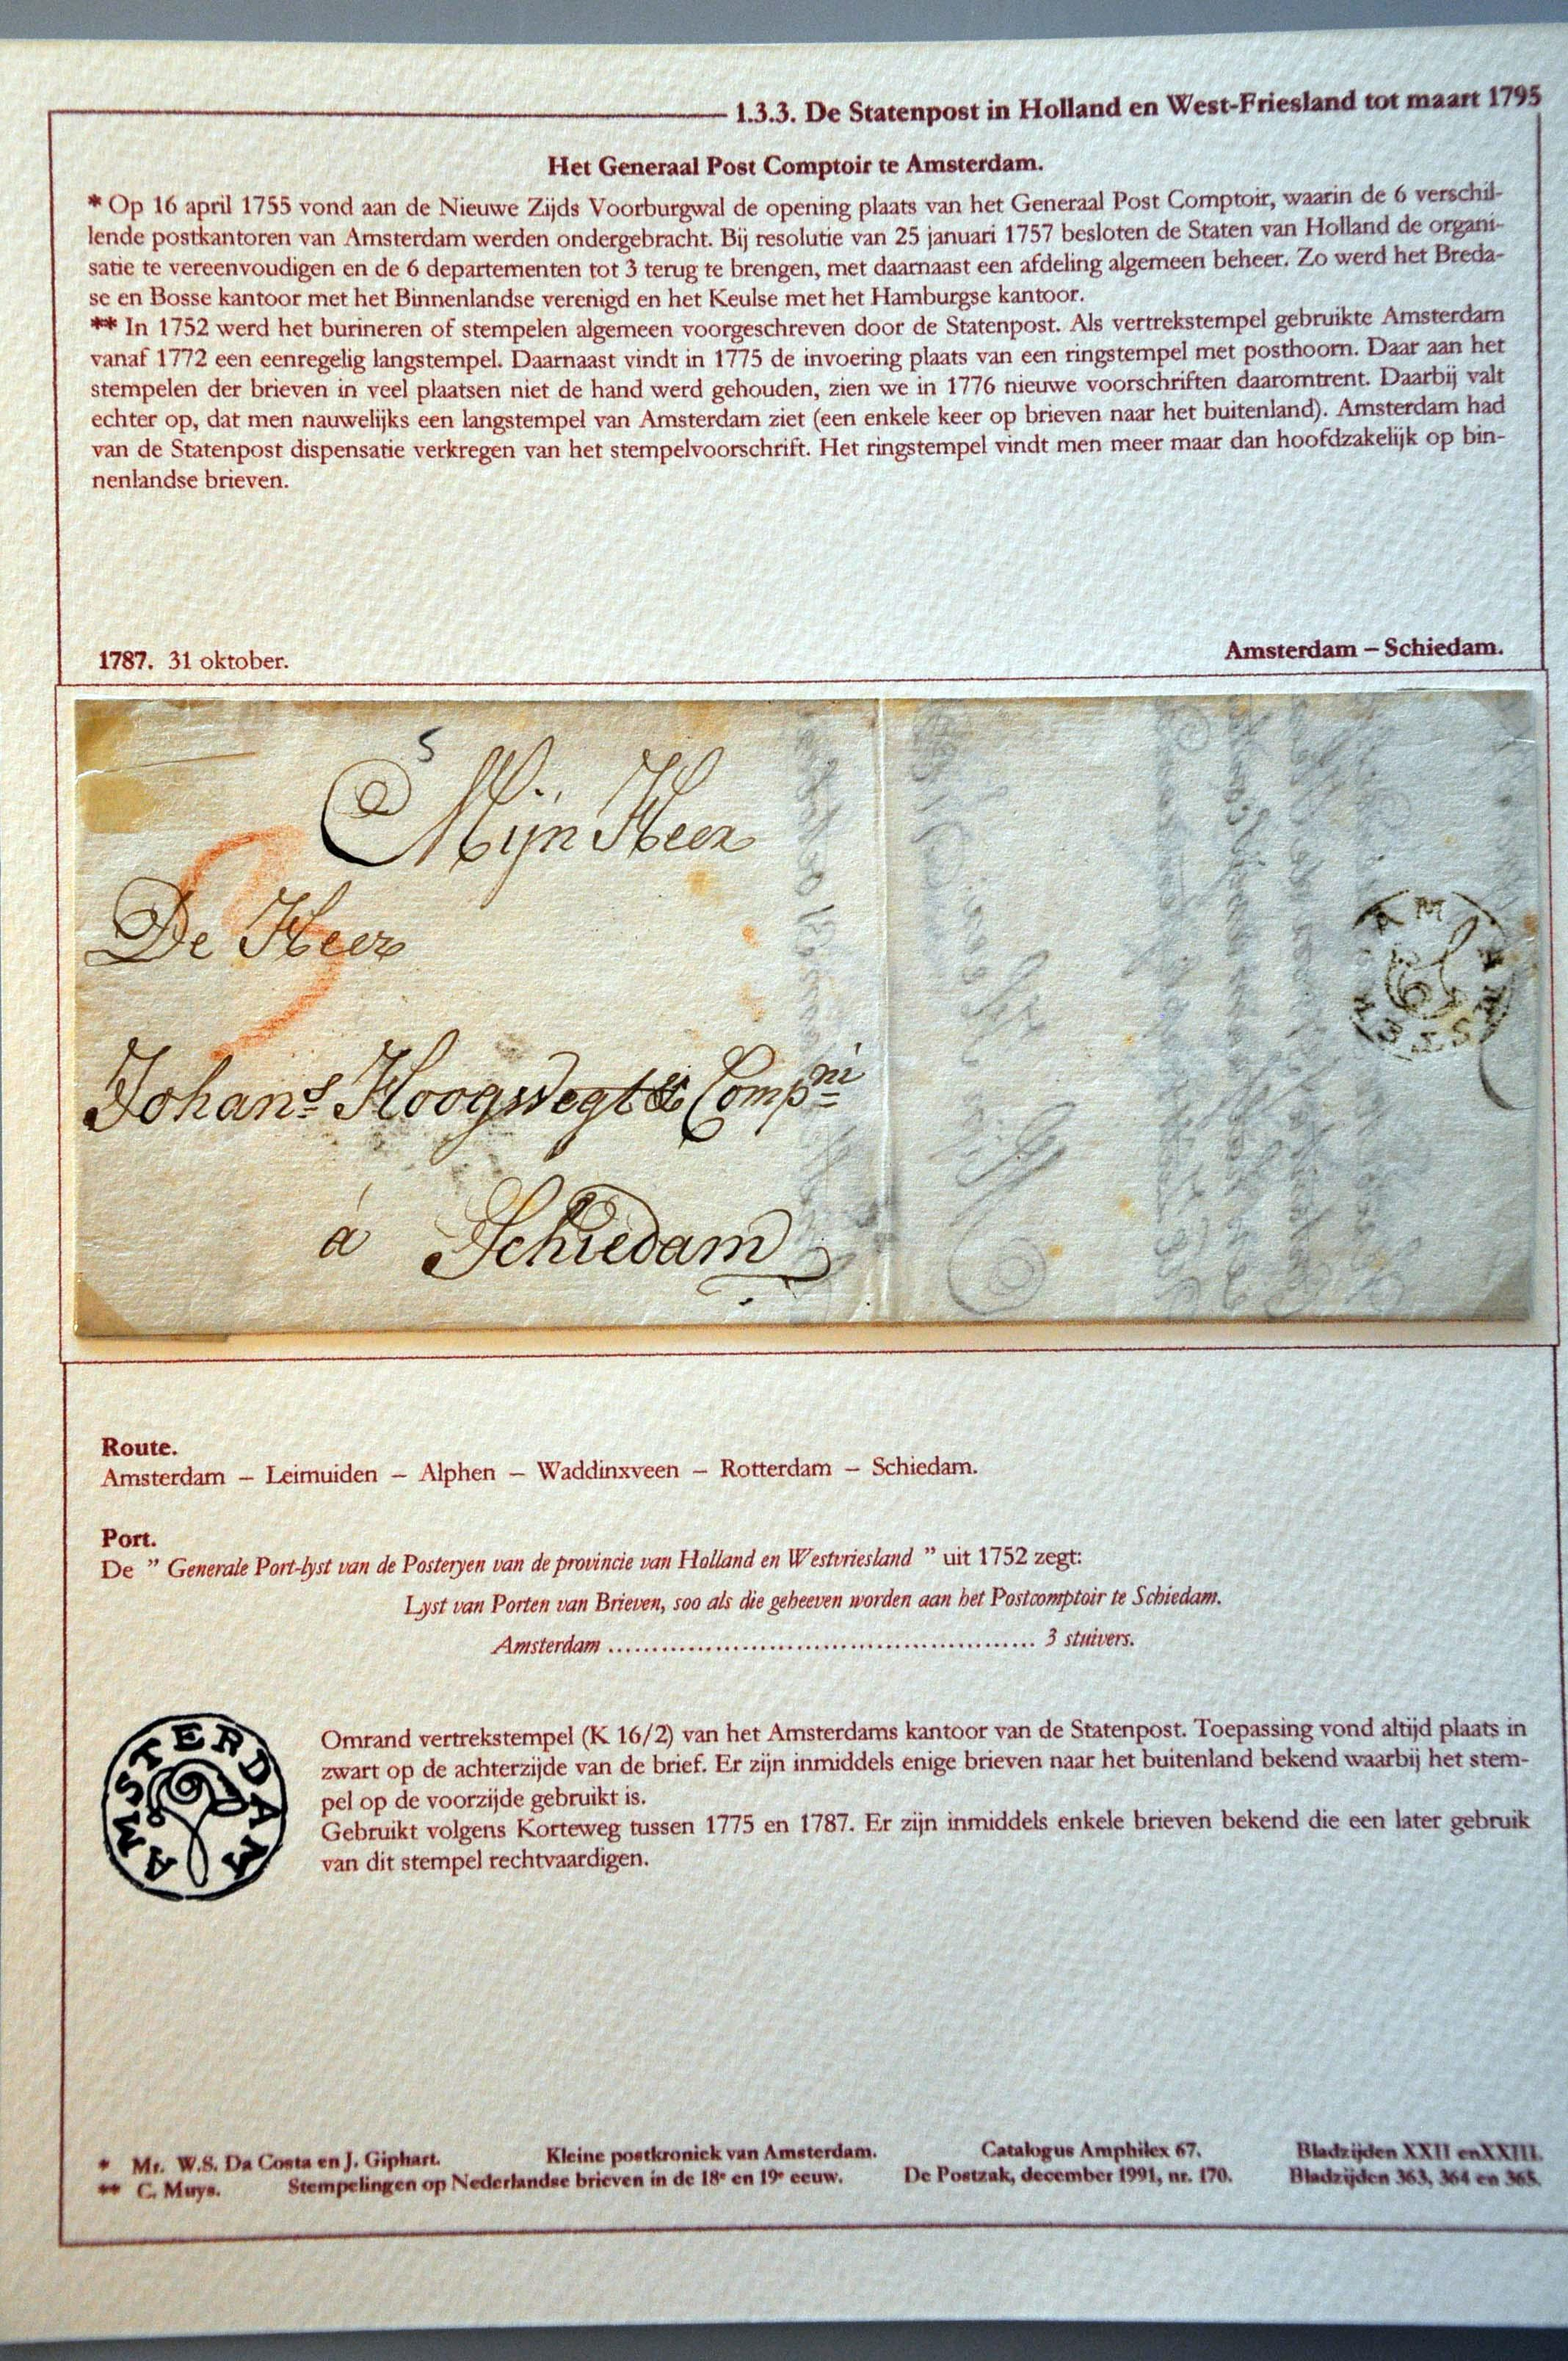 Lot 1661 - Netherlands and former colonies Netherlands -  Corinphila Veilingen Auction 250-253 - Day 2 - Coins, medals, Netherlands and former colonies